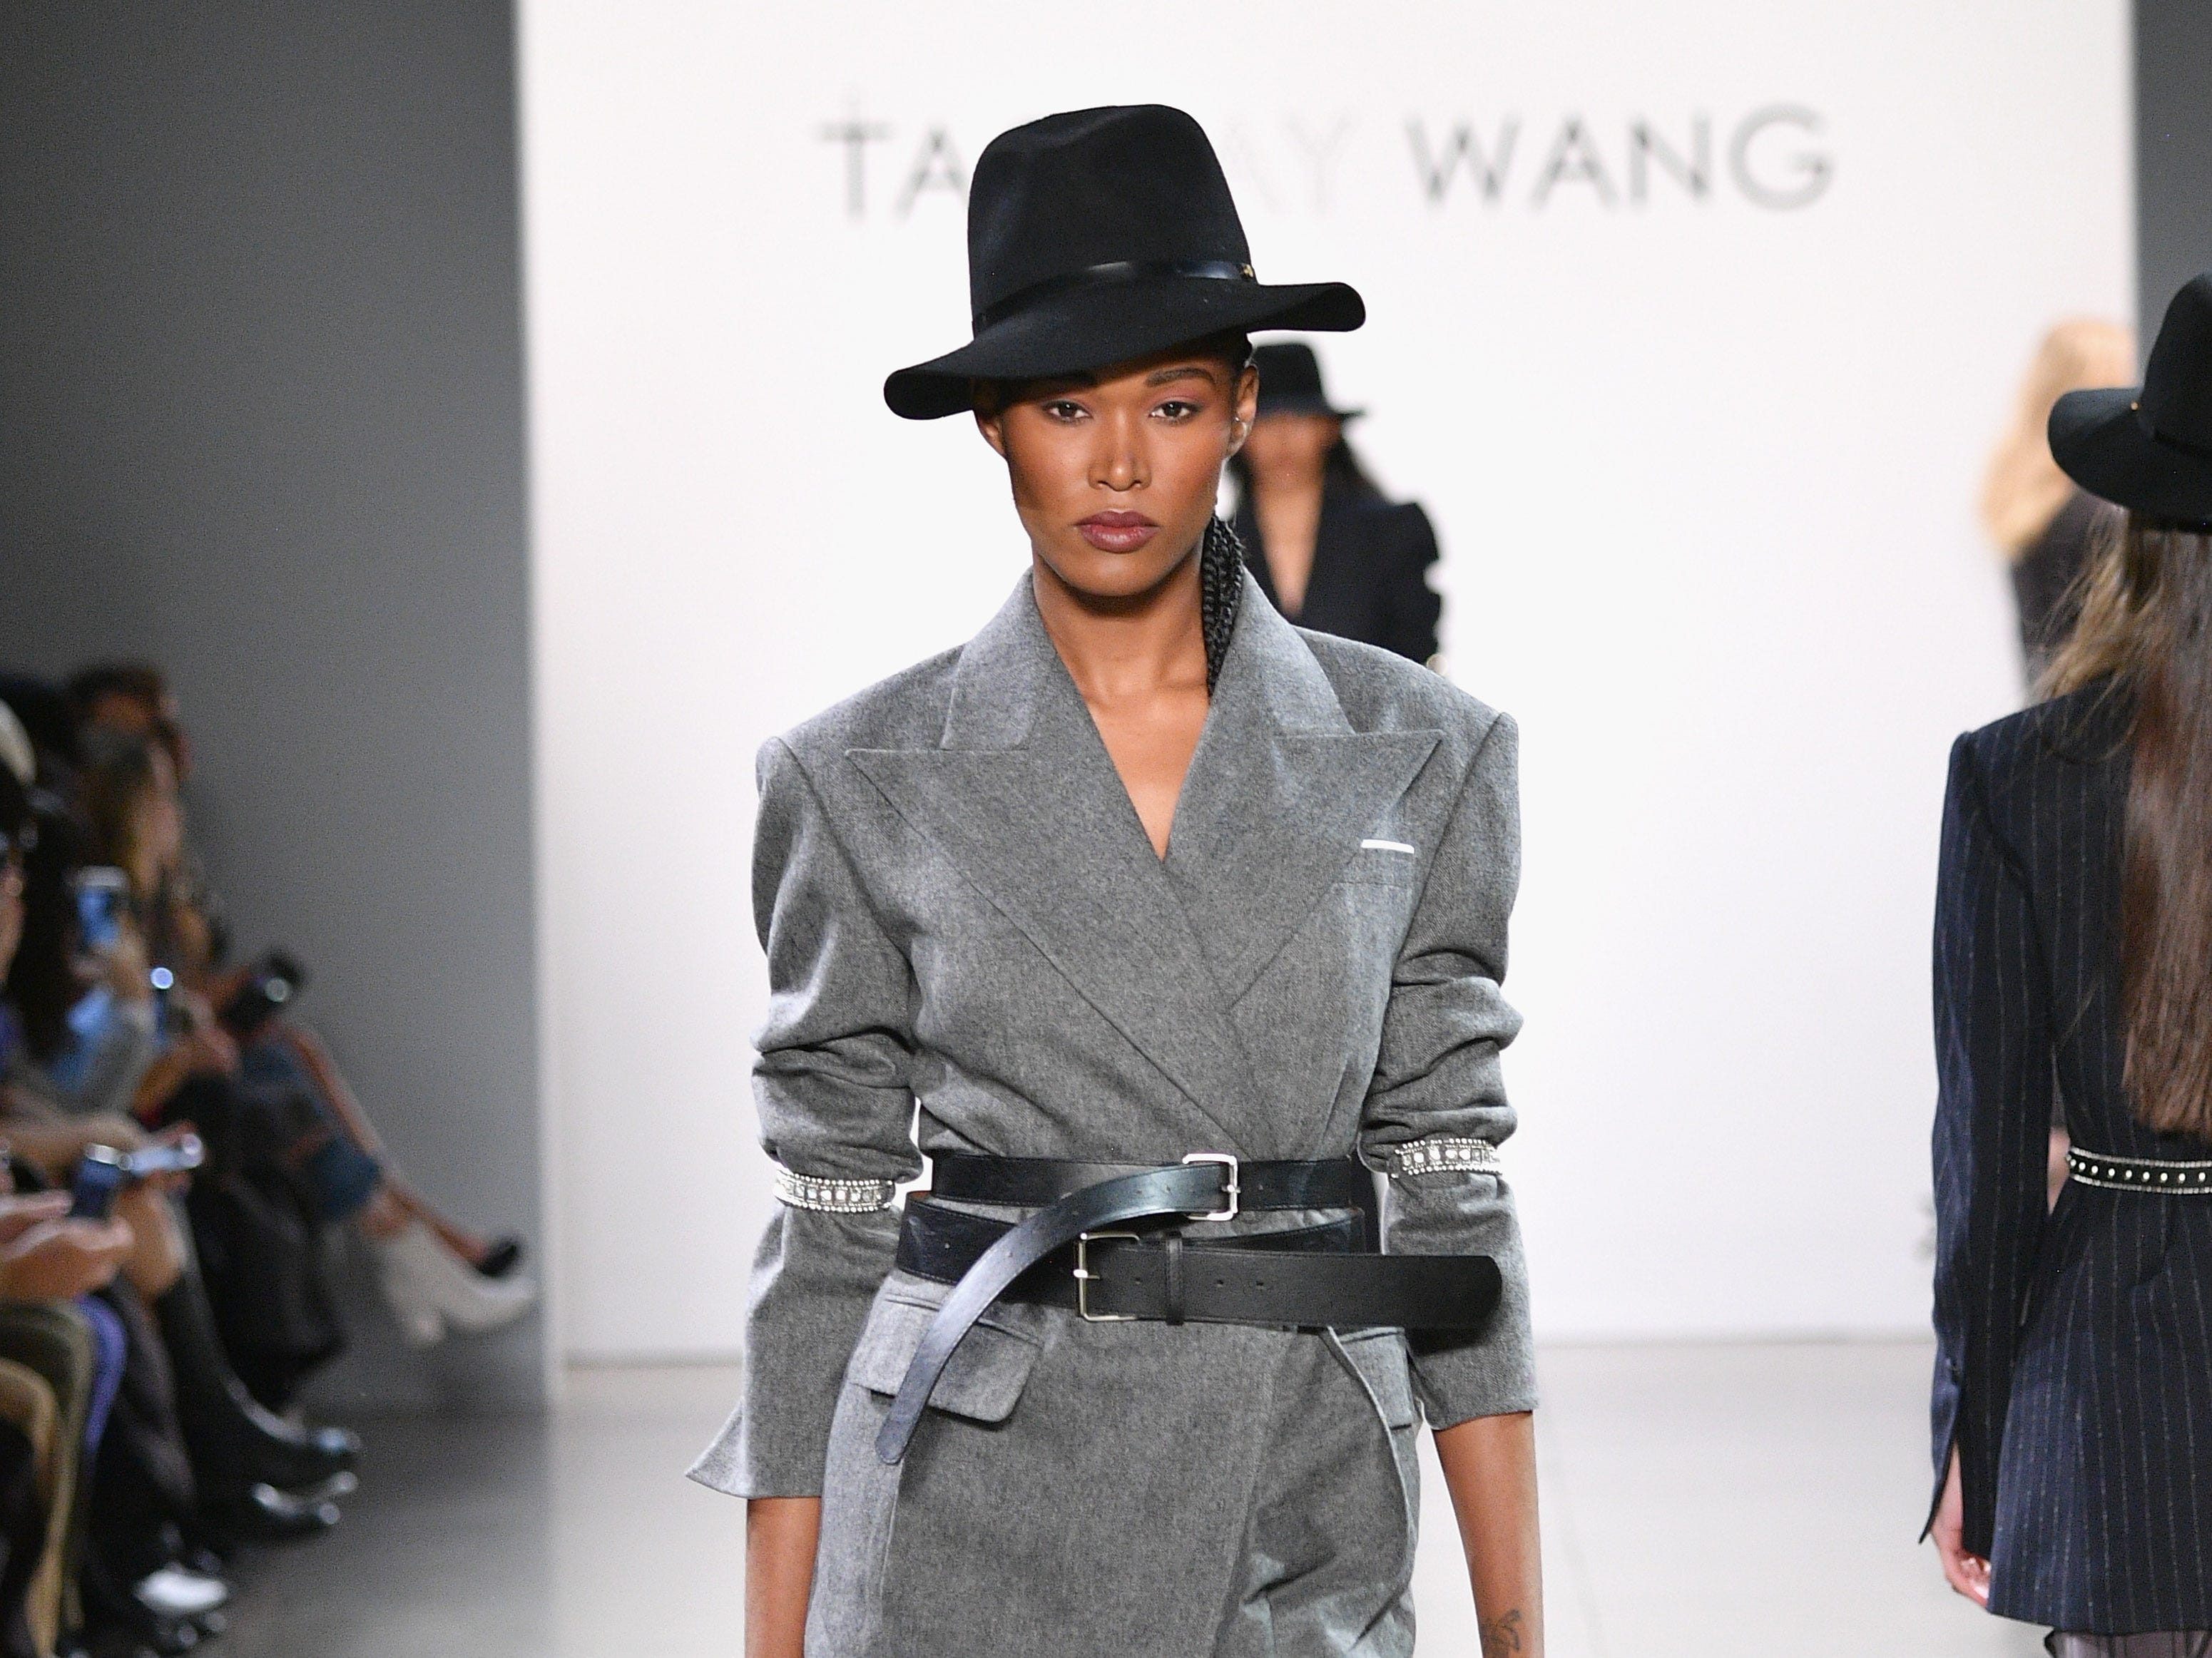 NEW YORK, NY - FEBRUARY 09:  A model walks the runway for the Taoray Wang fashion show during New York Fashion Week: The Shows at Gallery II at Spring Studios on February 9, 2019 in New York City.  (Photo by Dia Dipasupil/Getty Images for Taoray Wang) ORG XMIT: 775290801 ORIG FILE ID: 1096566424